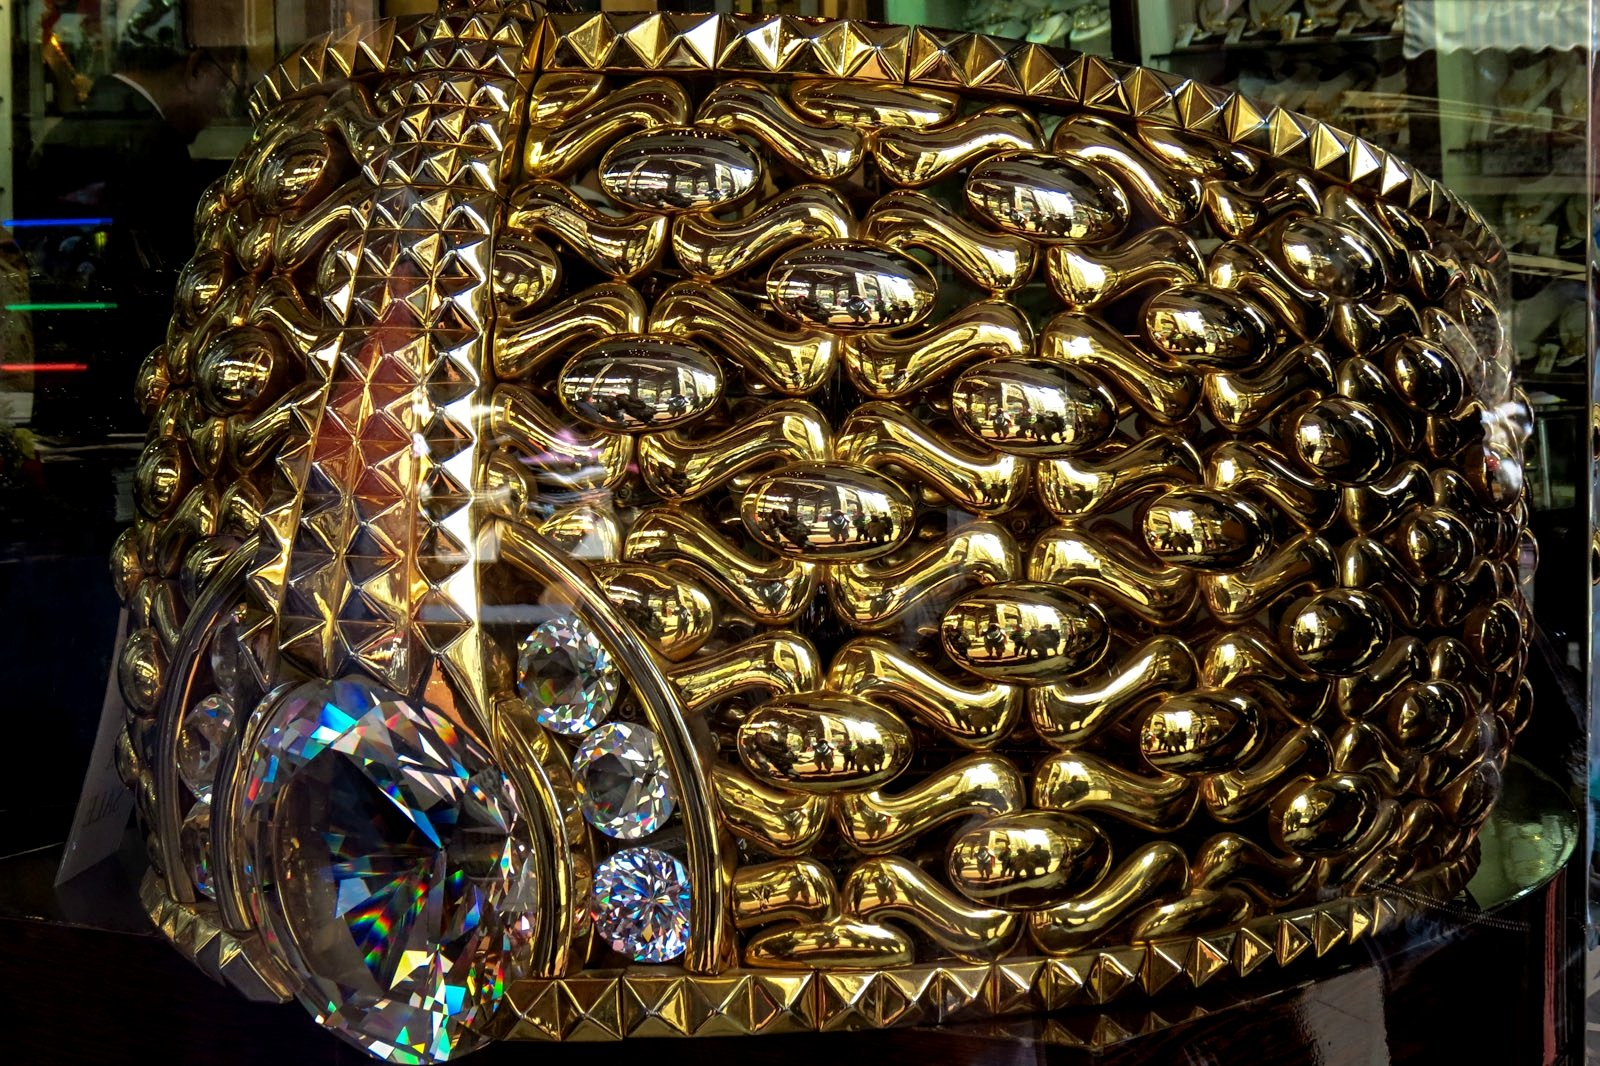 How to see the largest gold ring in the world in Dubai